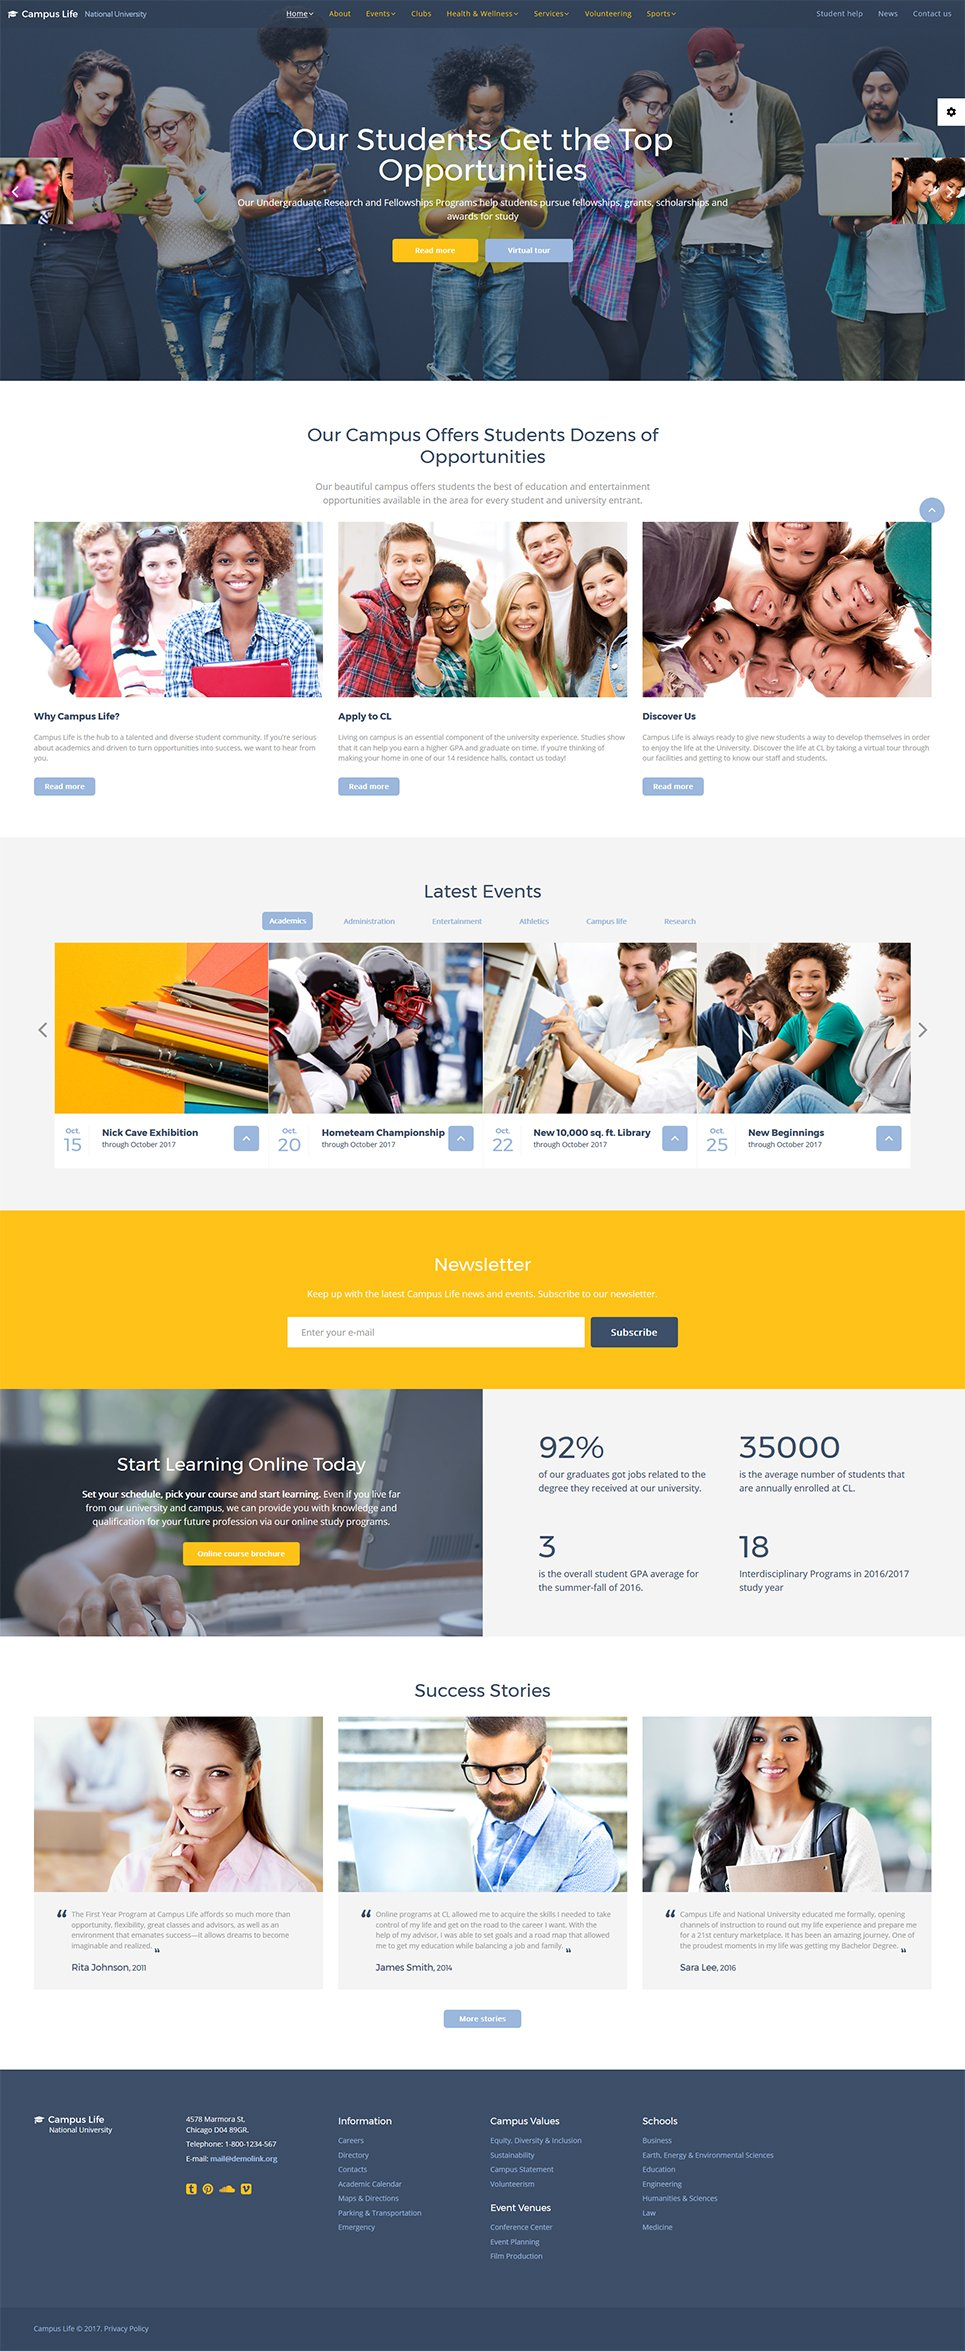 Campus Life - National University Multipage Website Template - screenshot